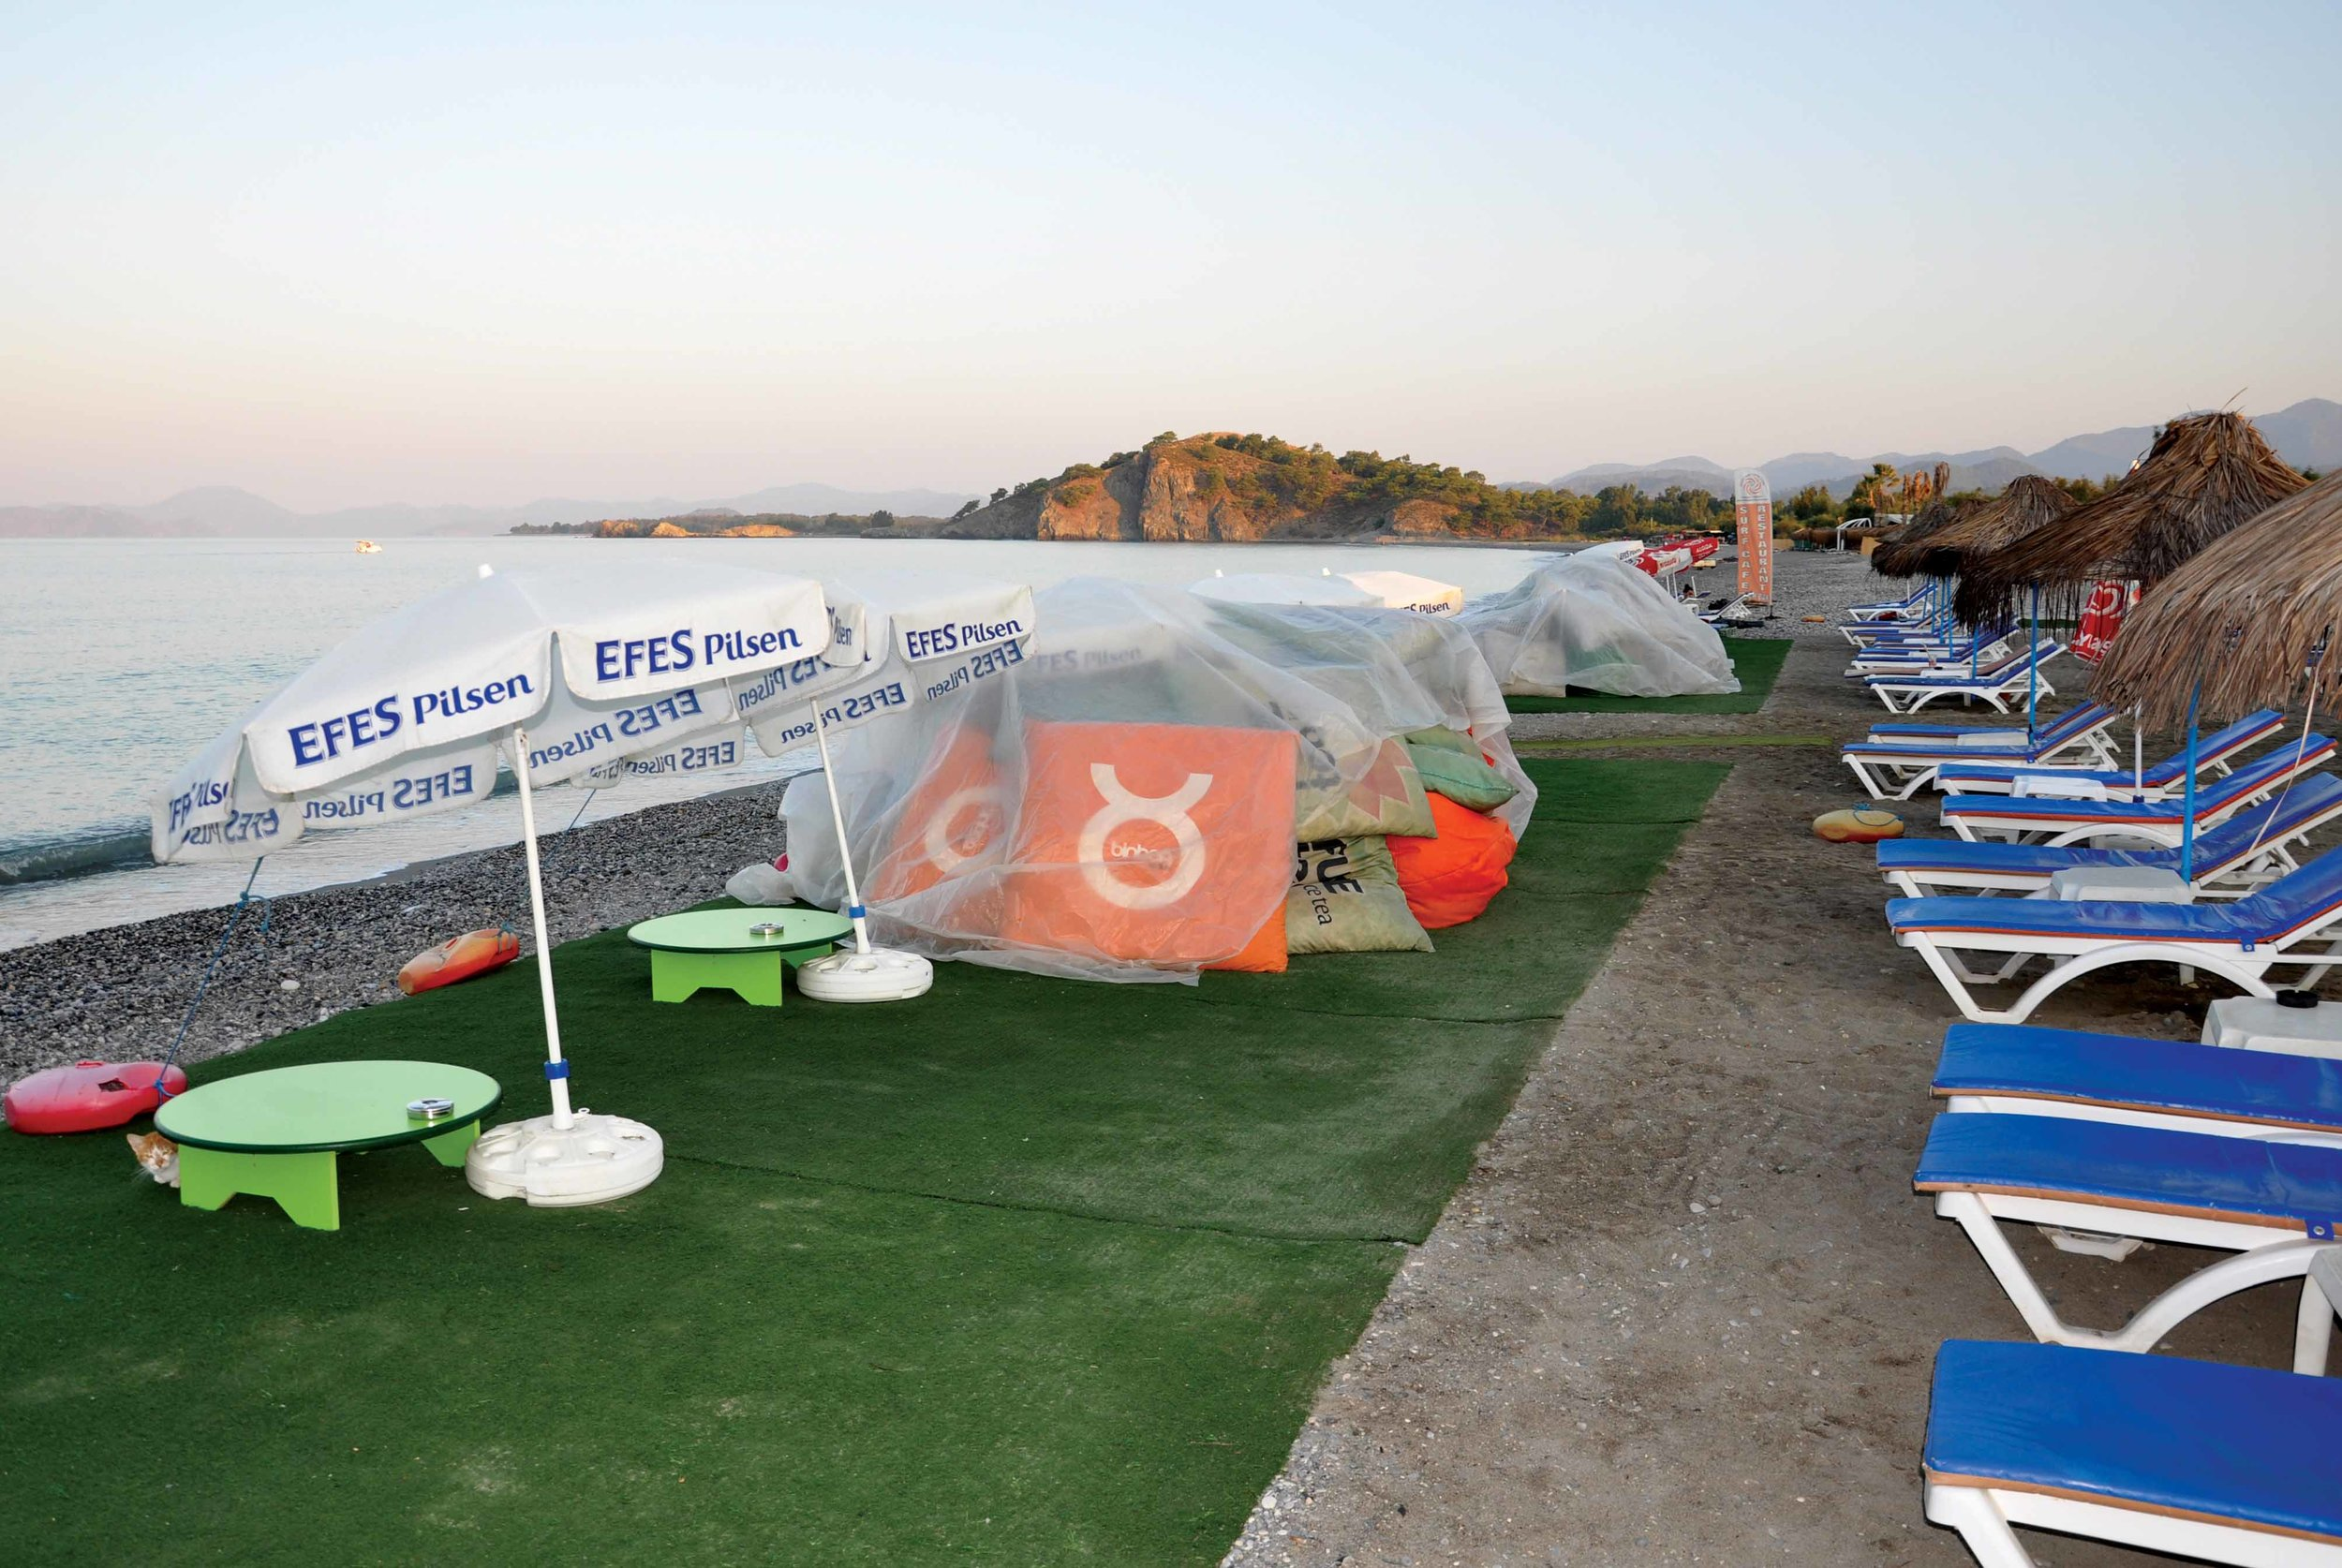 With no management plan in place, beachfront businesses at Calis Beach, Fethiye, Turkey, are encroaching on valuable turtle nesting habitat. © MEDASSET (2013)